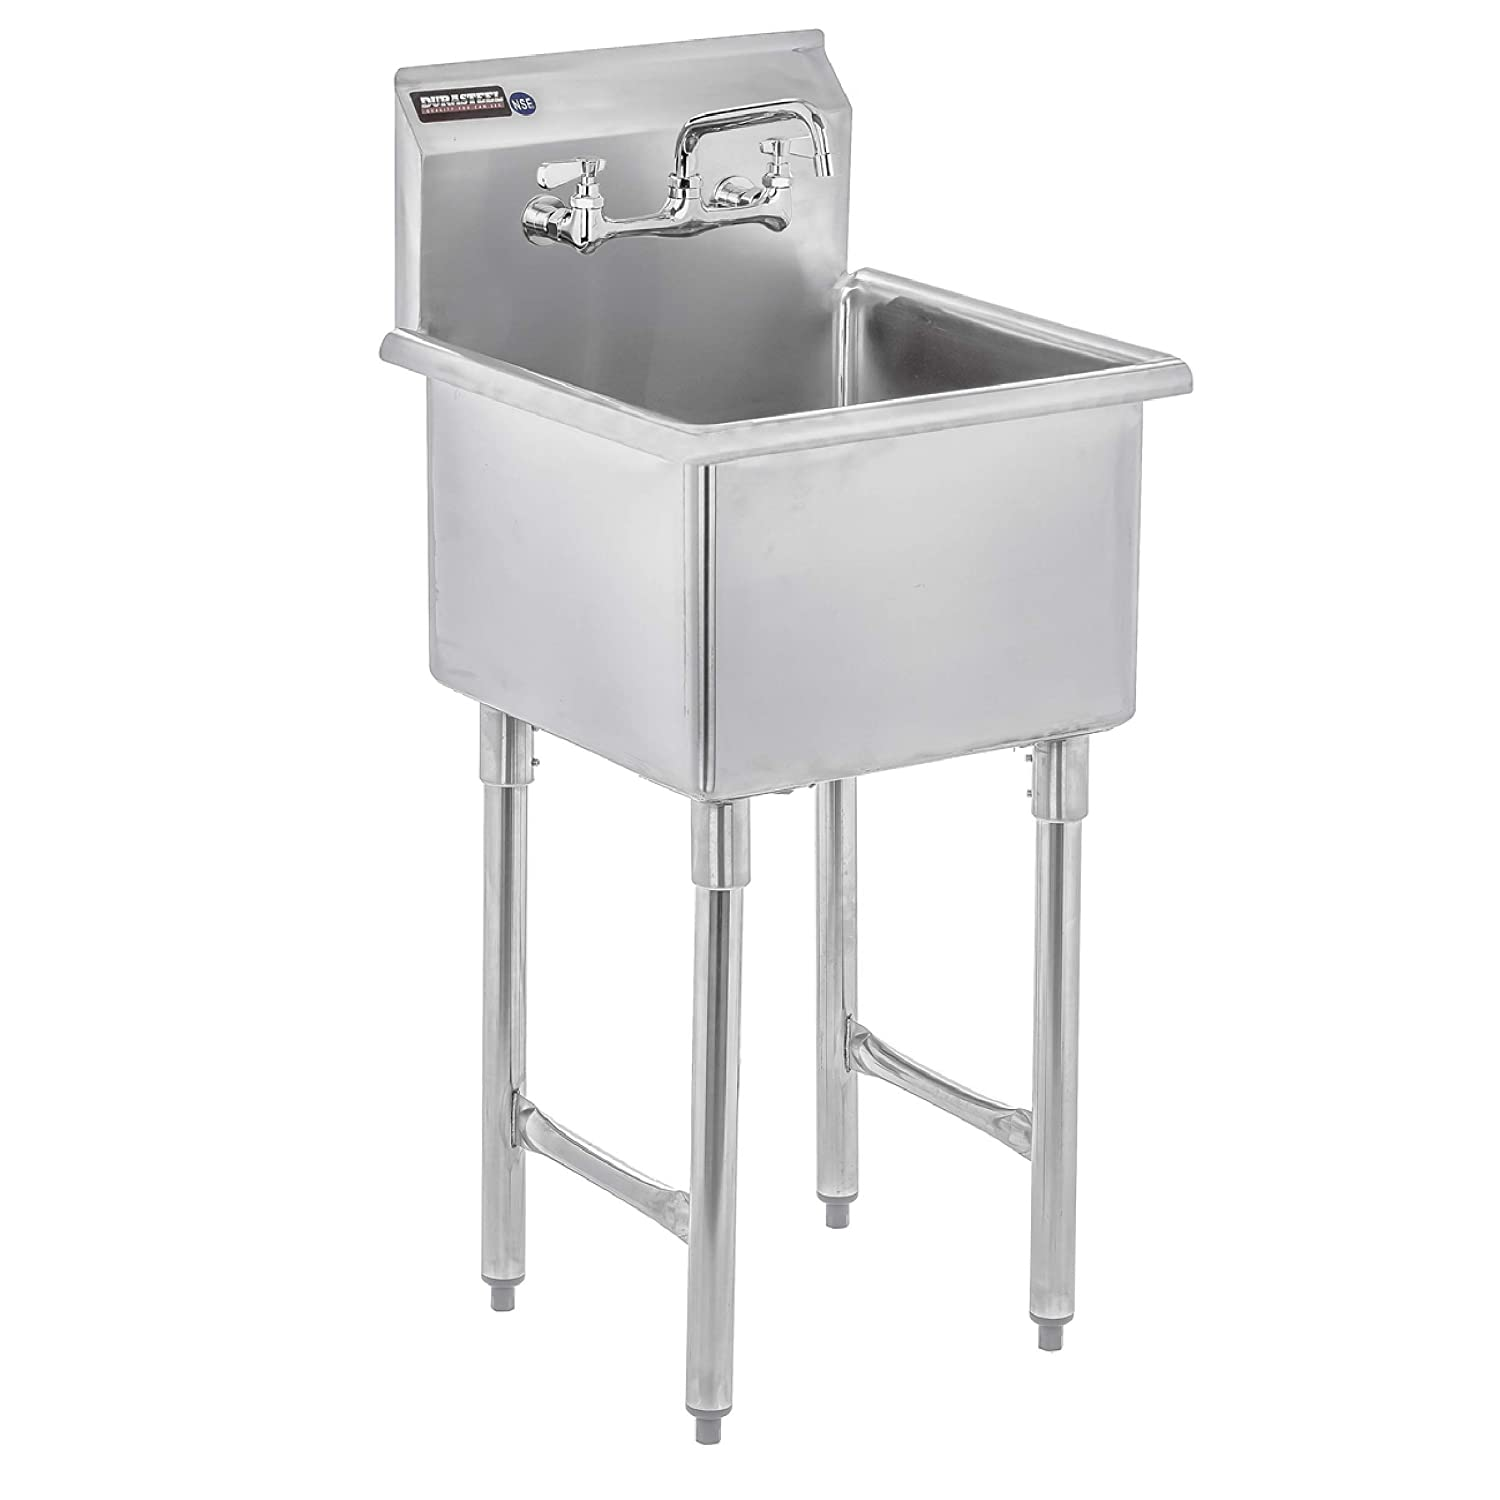 "DuraSteel Utility & Prep Sink - 1 Compartment Stainless Steel NSF Certified Easily Install - 18"" x 18"" Inner Tub Size with 8"" Swivel Spout Faucet (Commercial, Food, Kitchen, Laundry, Backyard)"